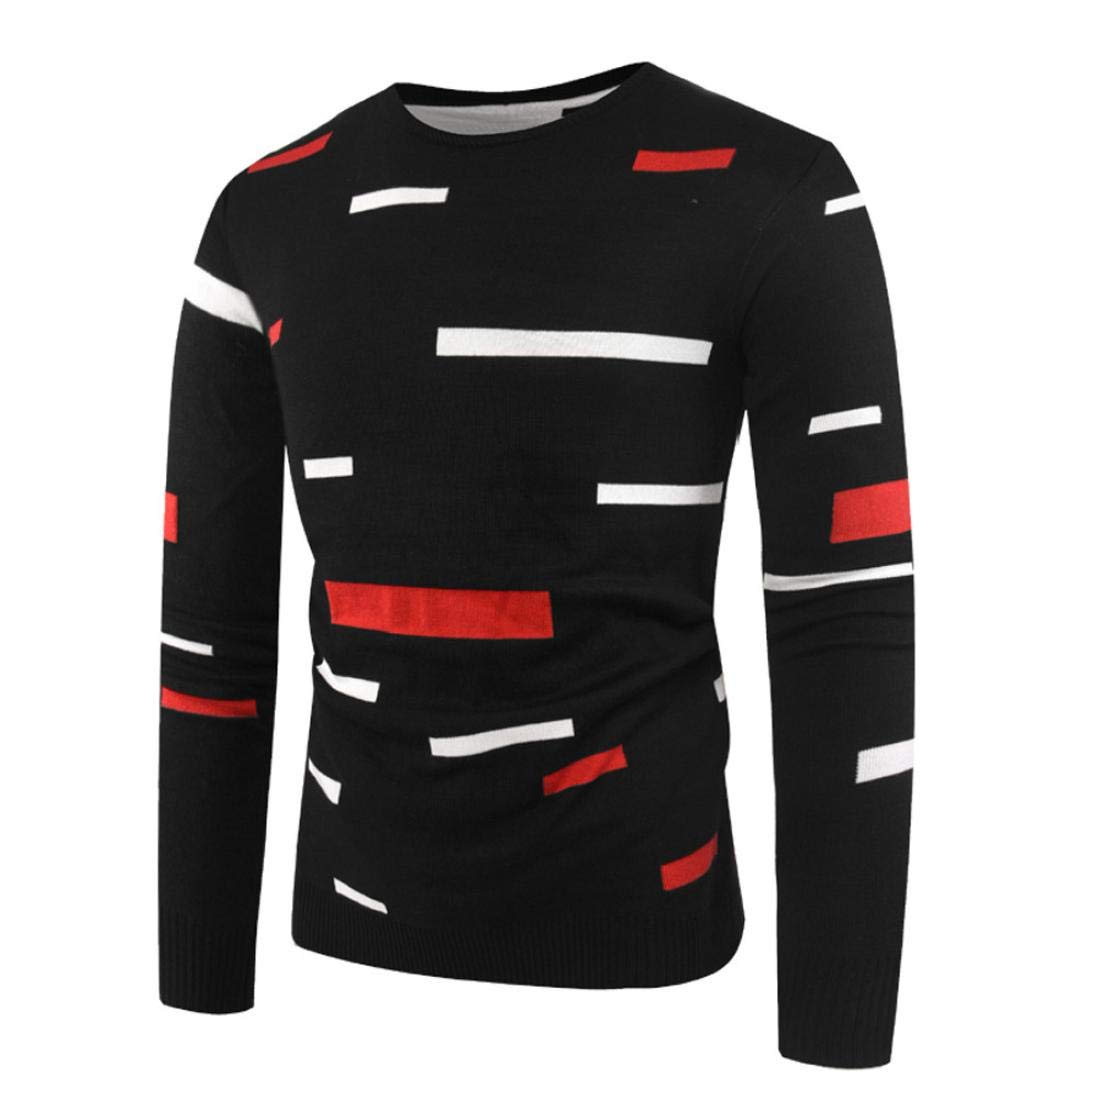 kaifongfu Sweater Tops,Men Printed Pullover Knitted Top Autumn Winter Outwear Blouse BlackXL